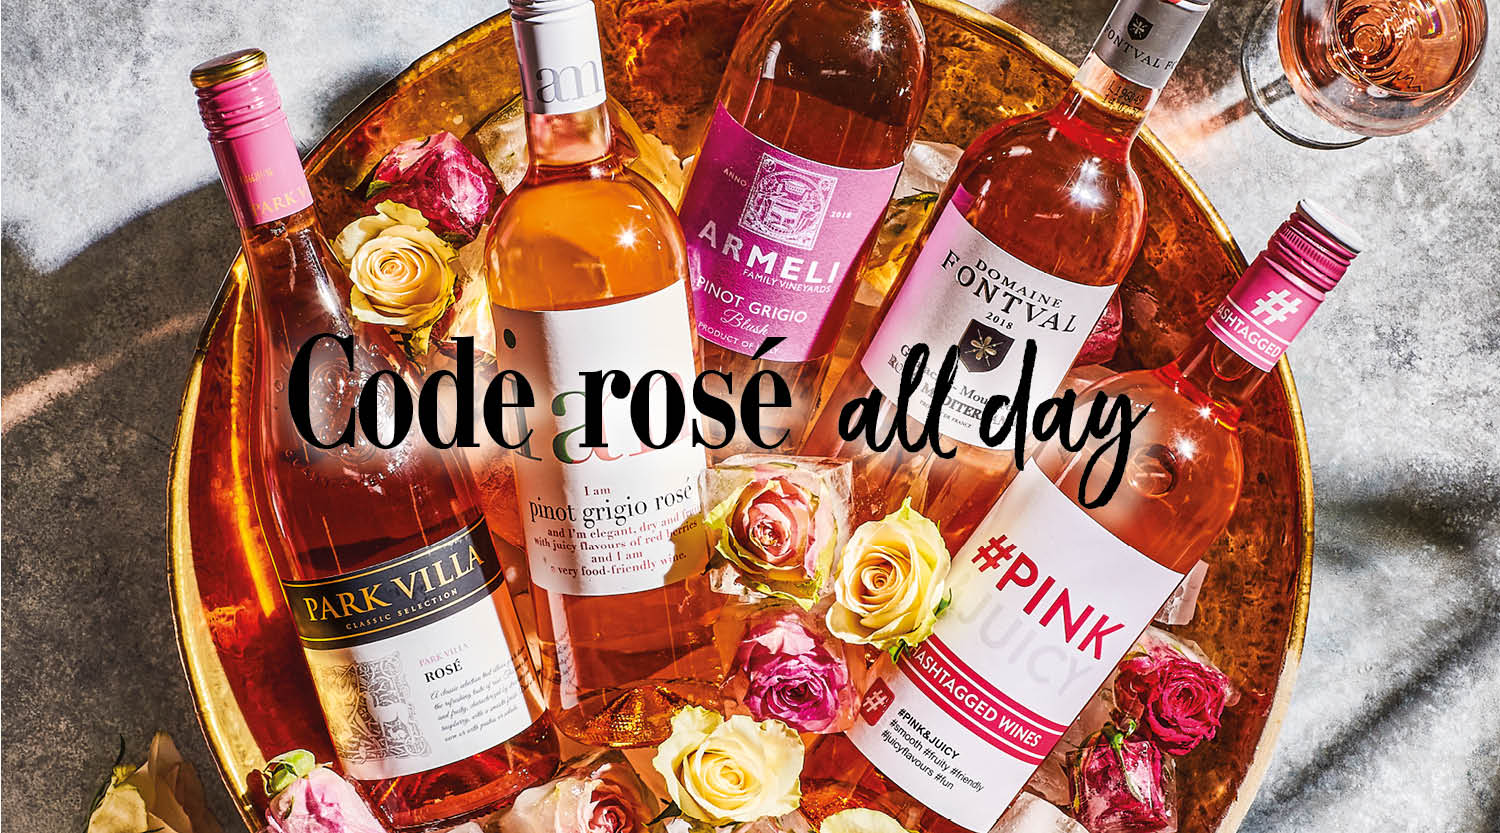 Code rose all day